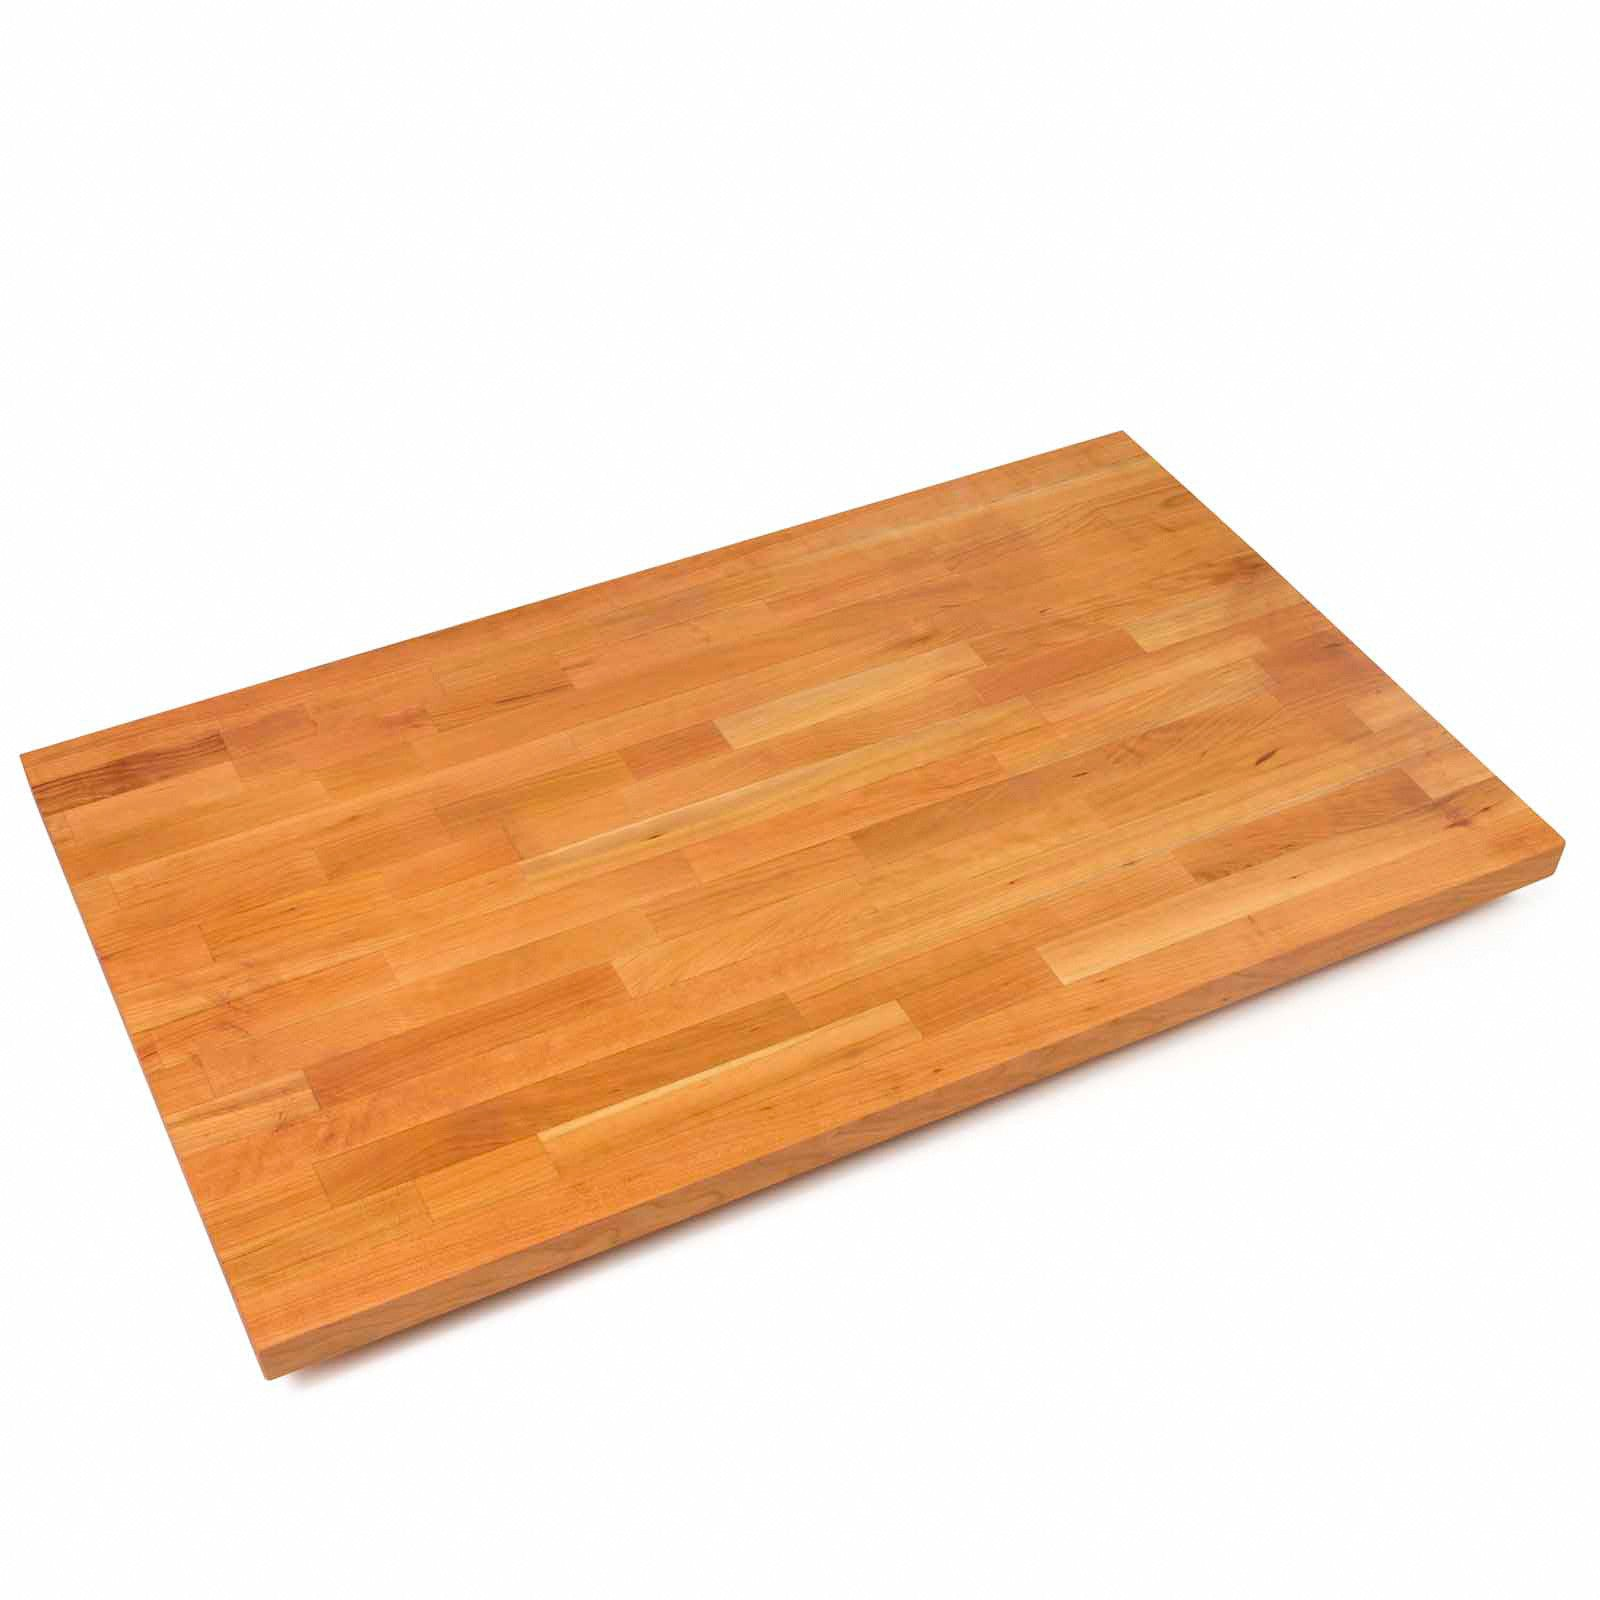 "John Boos 1 1/2"" Thick Blended Cherry Butcher Block Countertop - 25"" Wide"